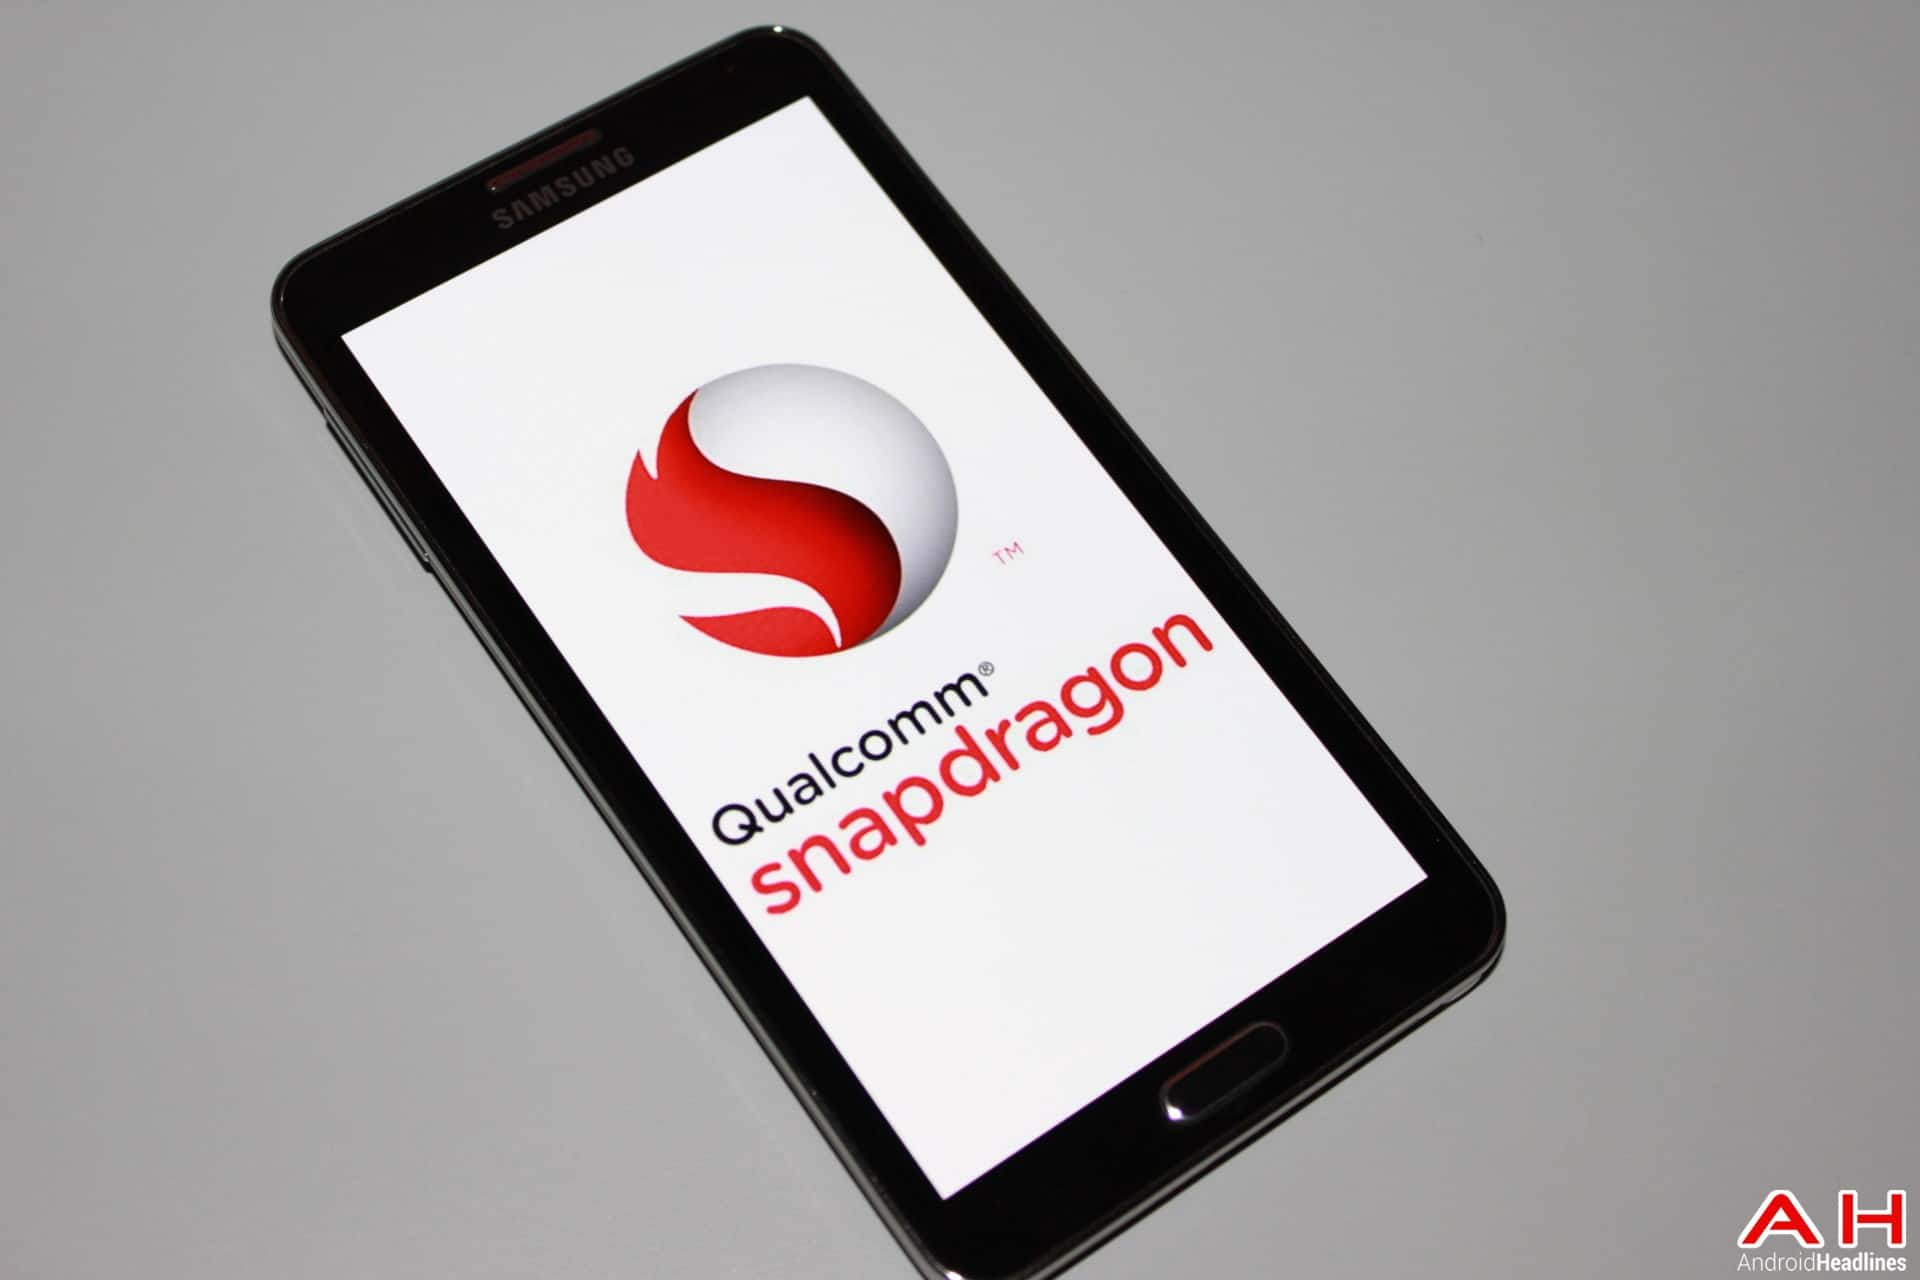 AH SnapDragon Qualcomm 1.6